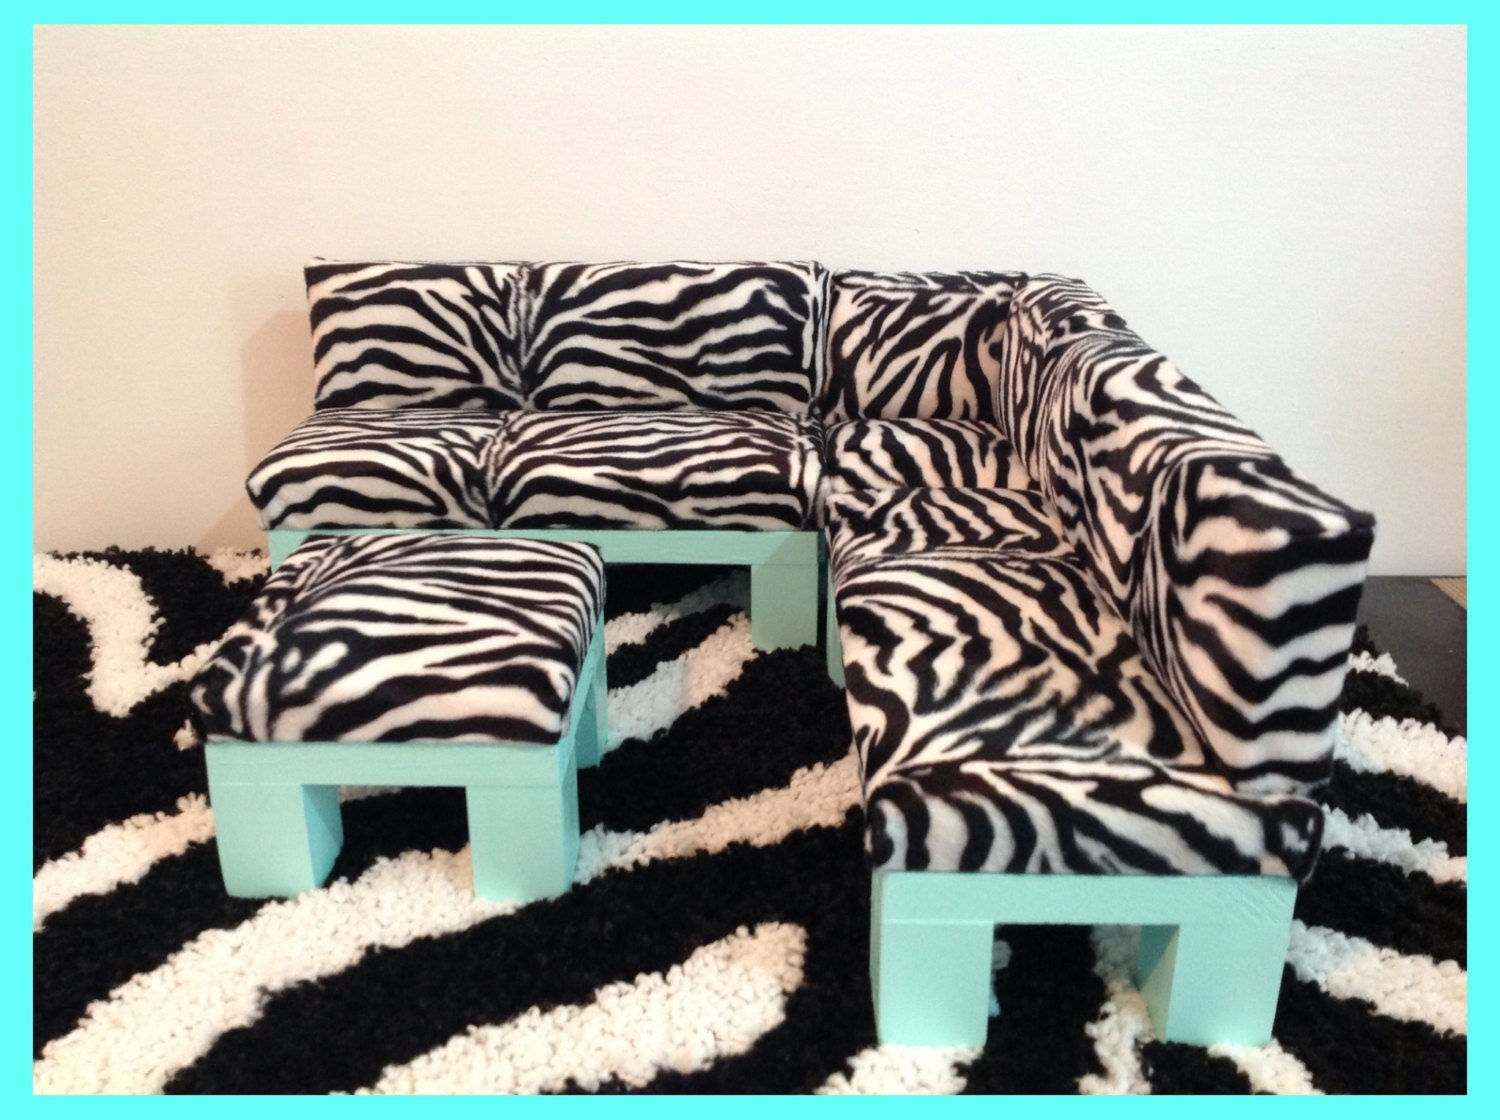 Zebra Print Sectional Sofa Furniture Set With Ottoman By Crixina